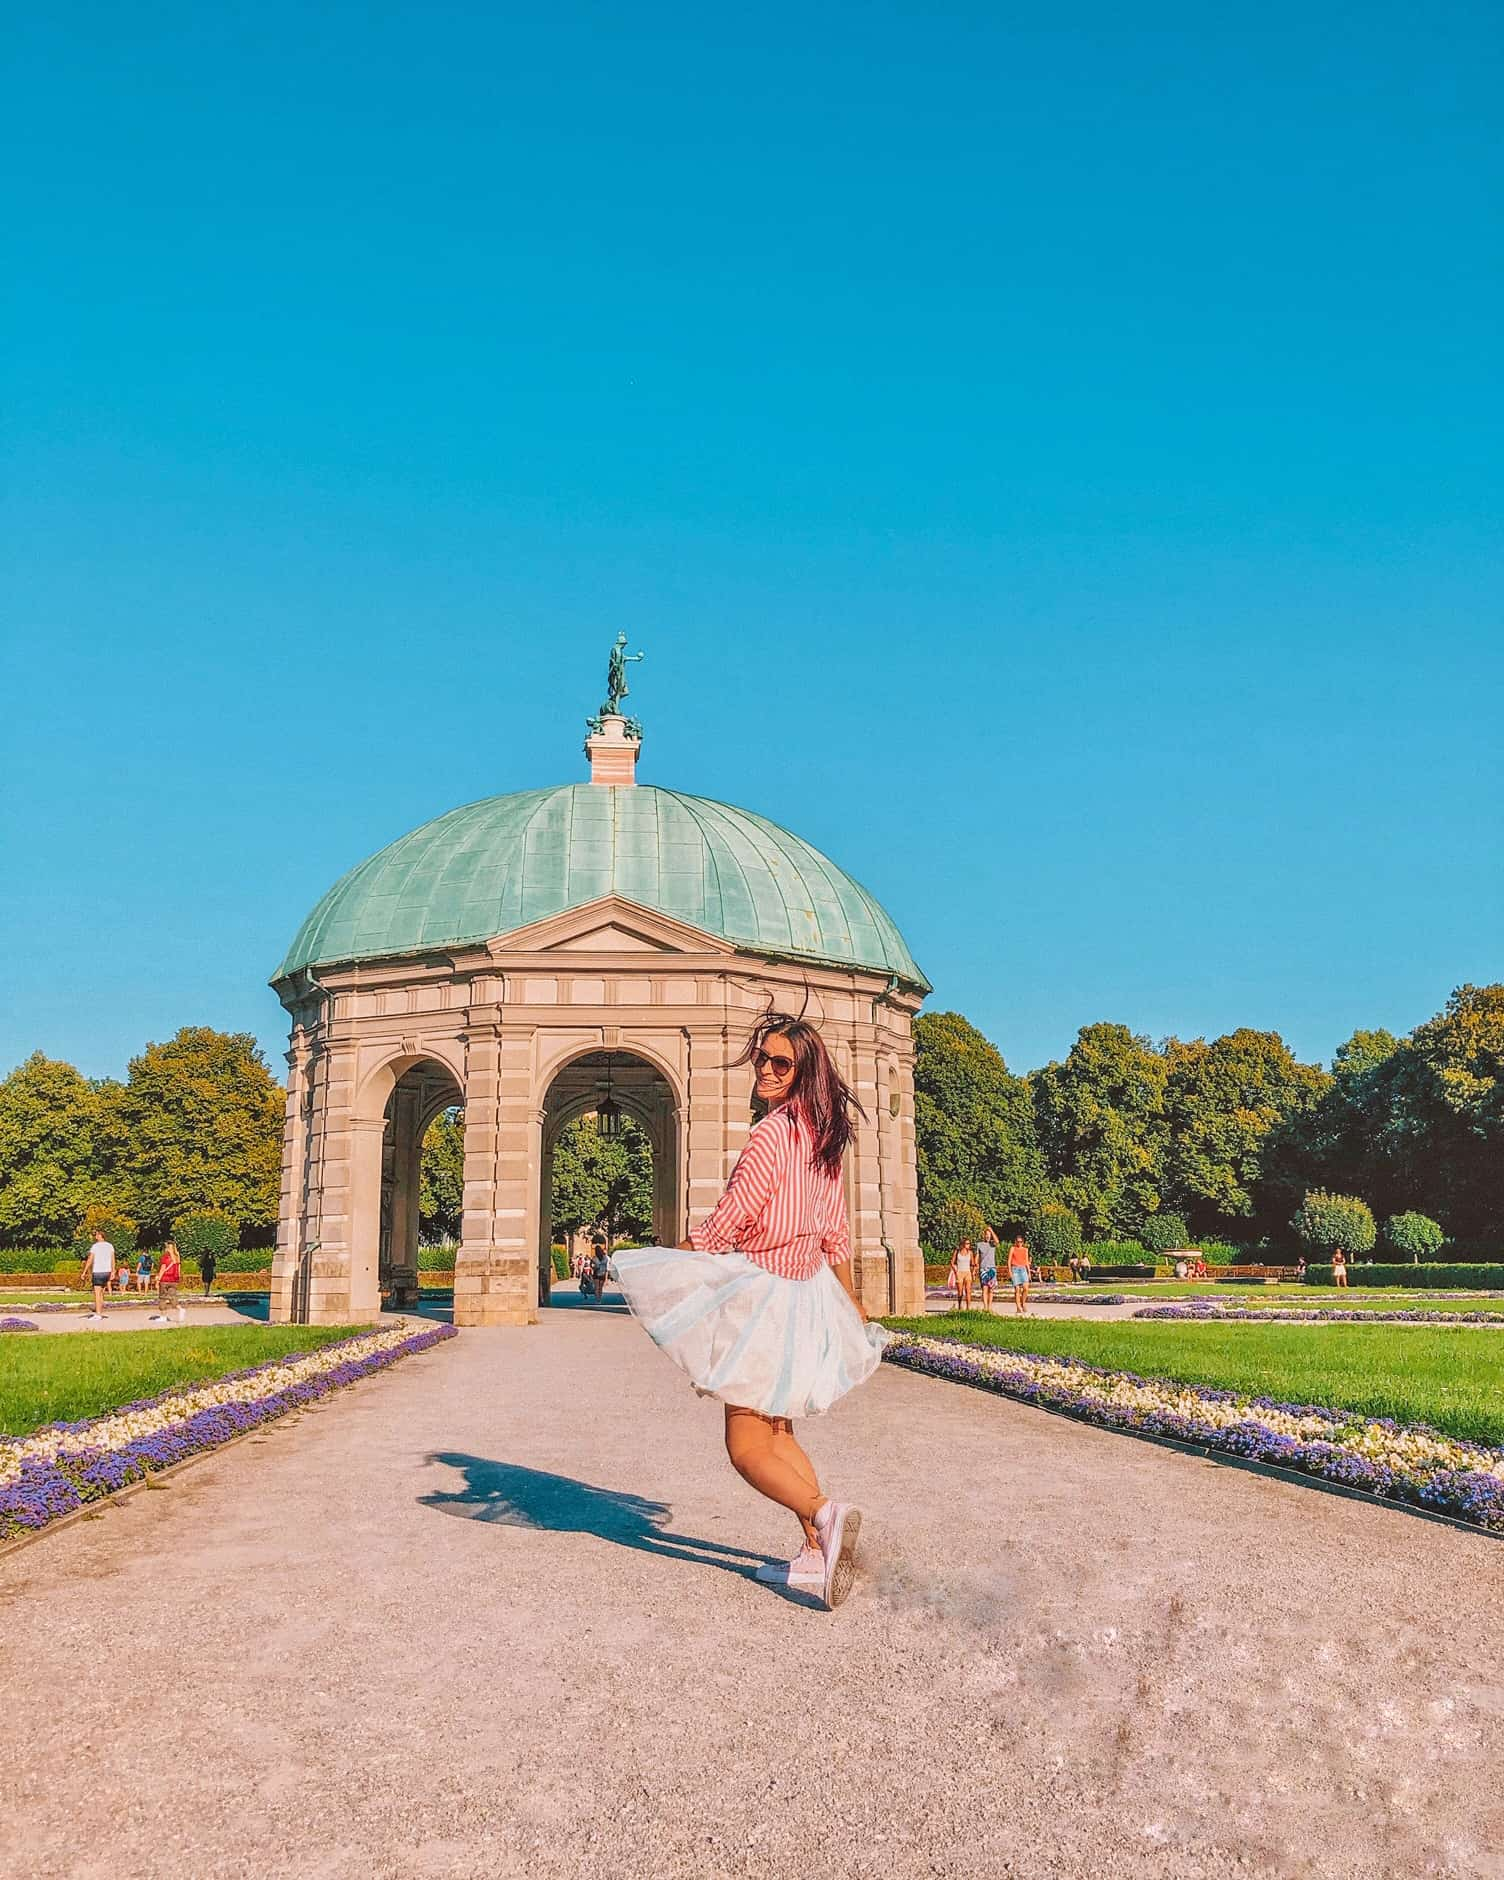 Munich Germany photography spots and the complete list of the most Instagrammable places in Munich. It can also make for a great list of what to do in Munich for when you travel to Germany next. #germany #munich #travel